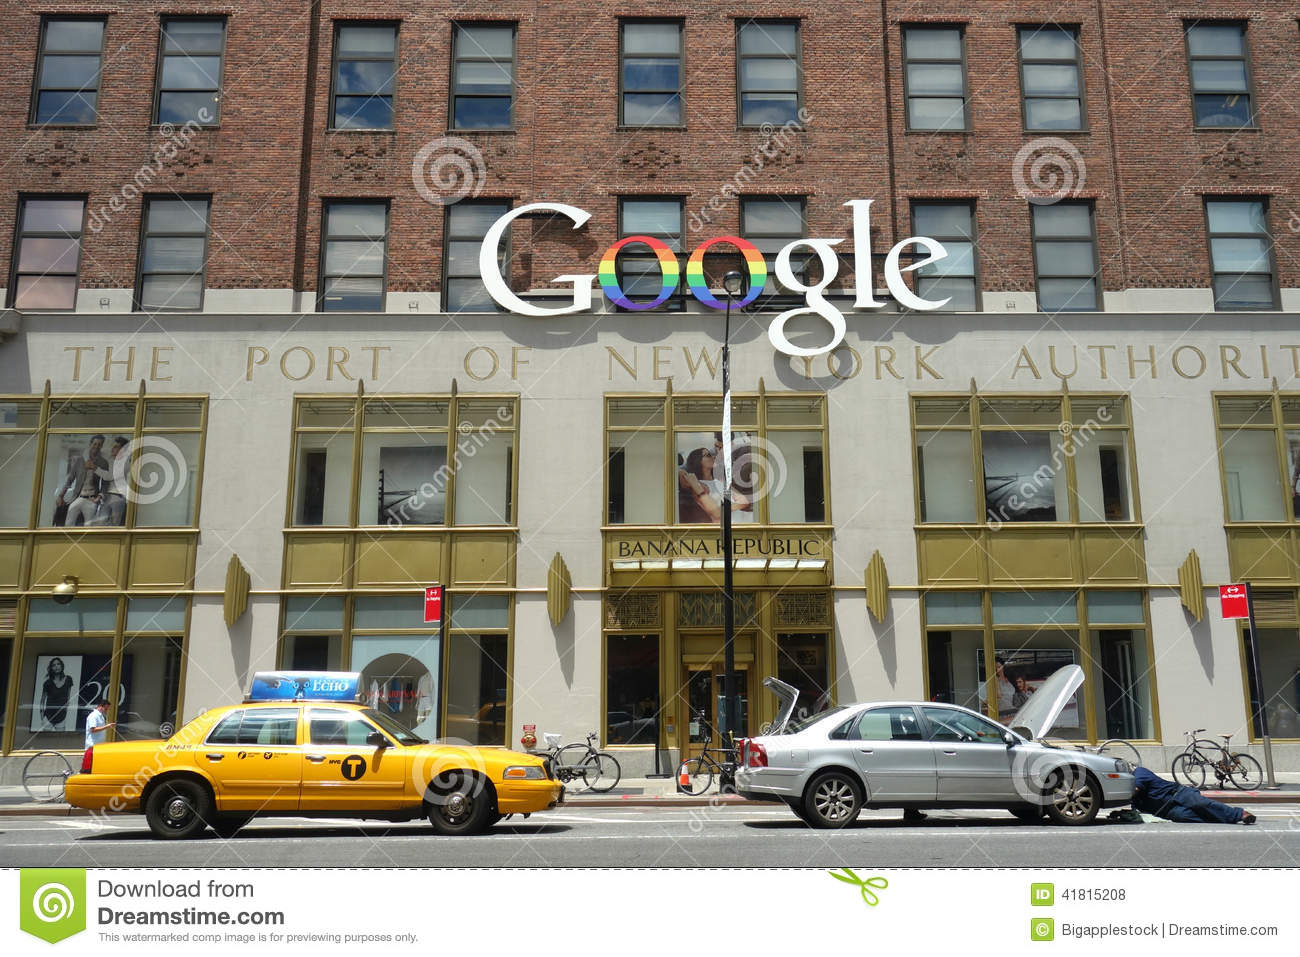 De Bureaus van Google New York